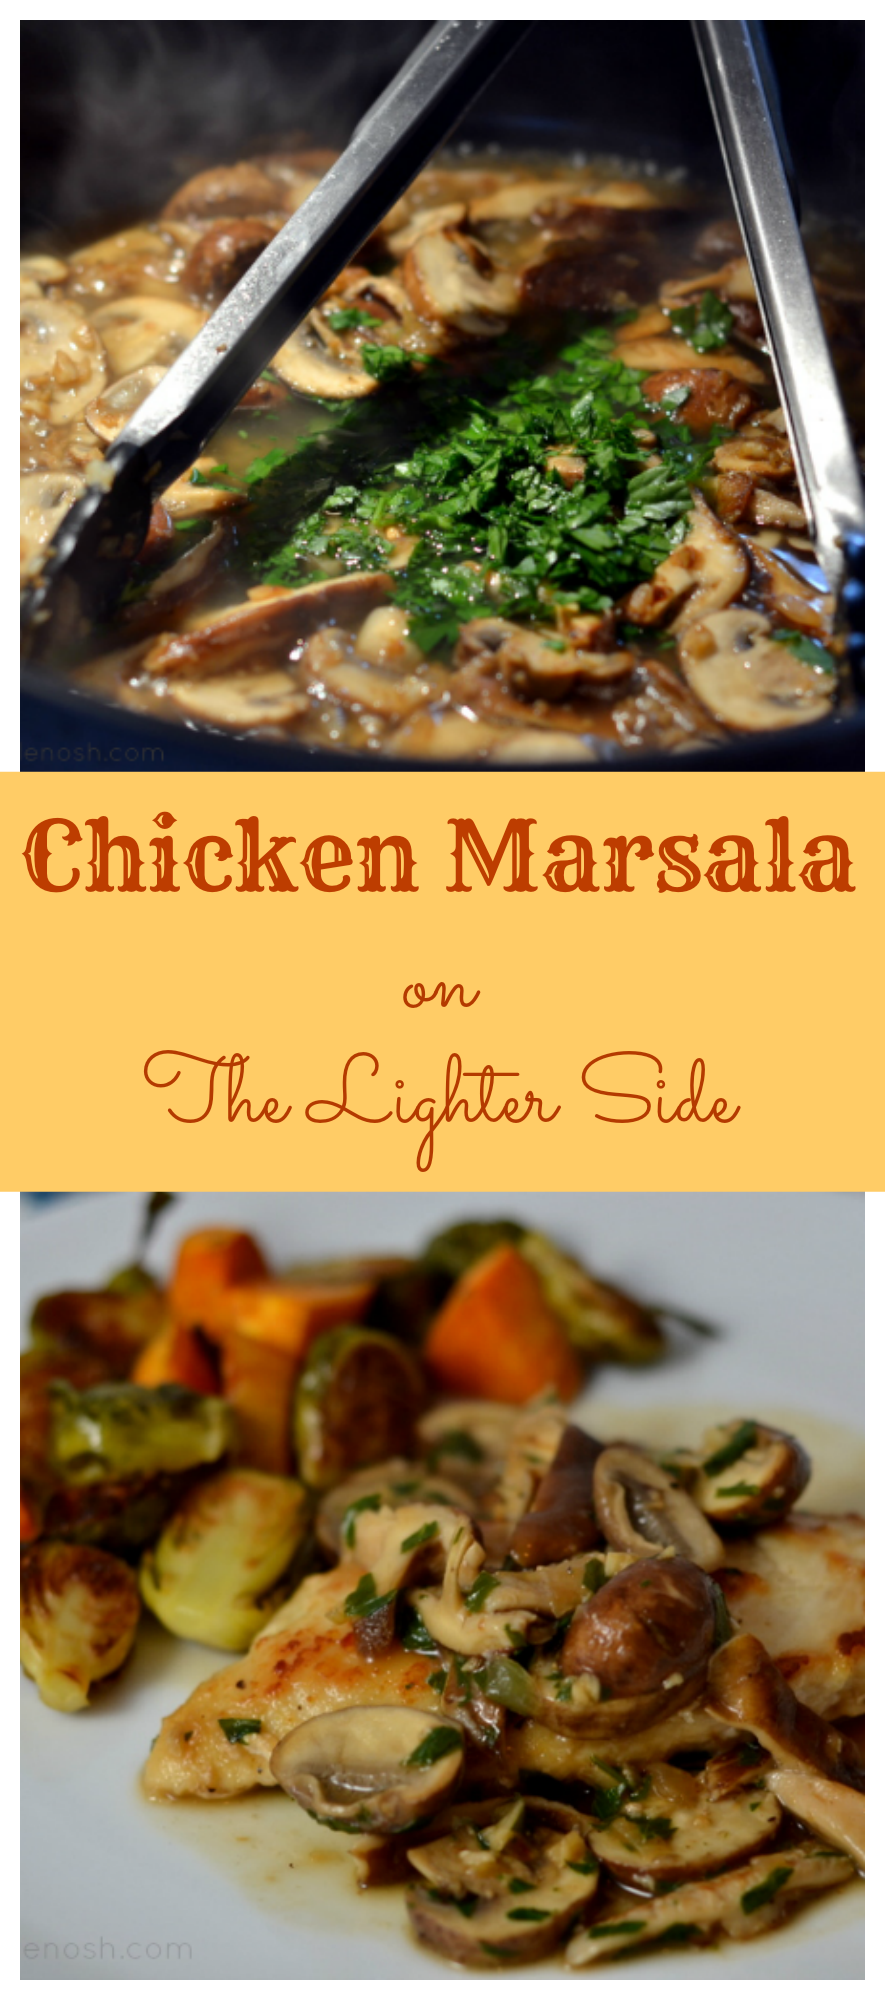 This lightened up version of Chicken Marsala greets you with all of the flavor, and just a sprinkling of the usual calories and fat! Chicken Marsala on the Lighter Side at Chew Nibble Nosh